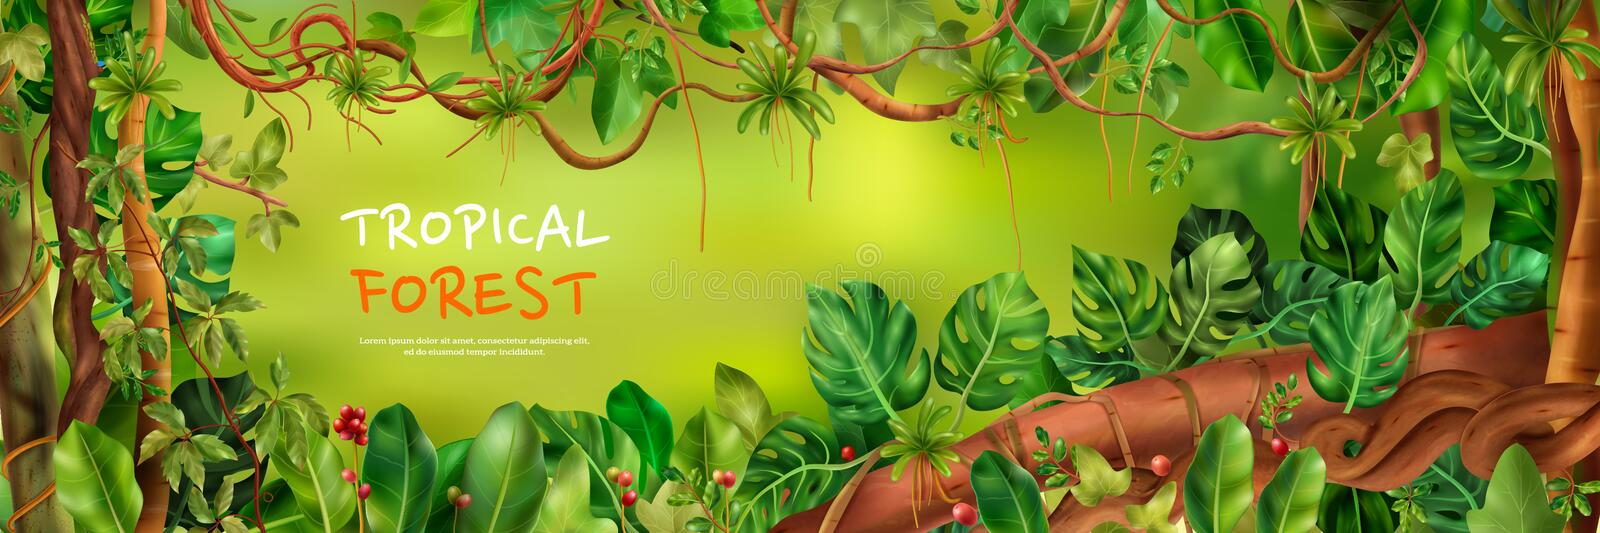 Tropical Forest Horizontal Poster royalty free stock image